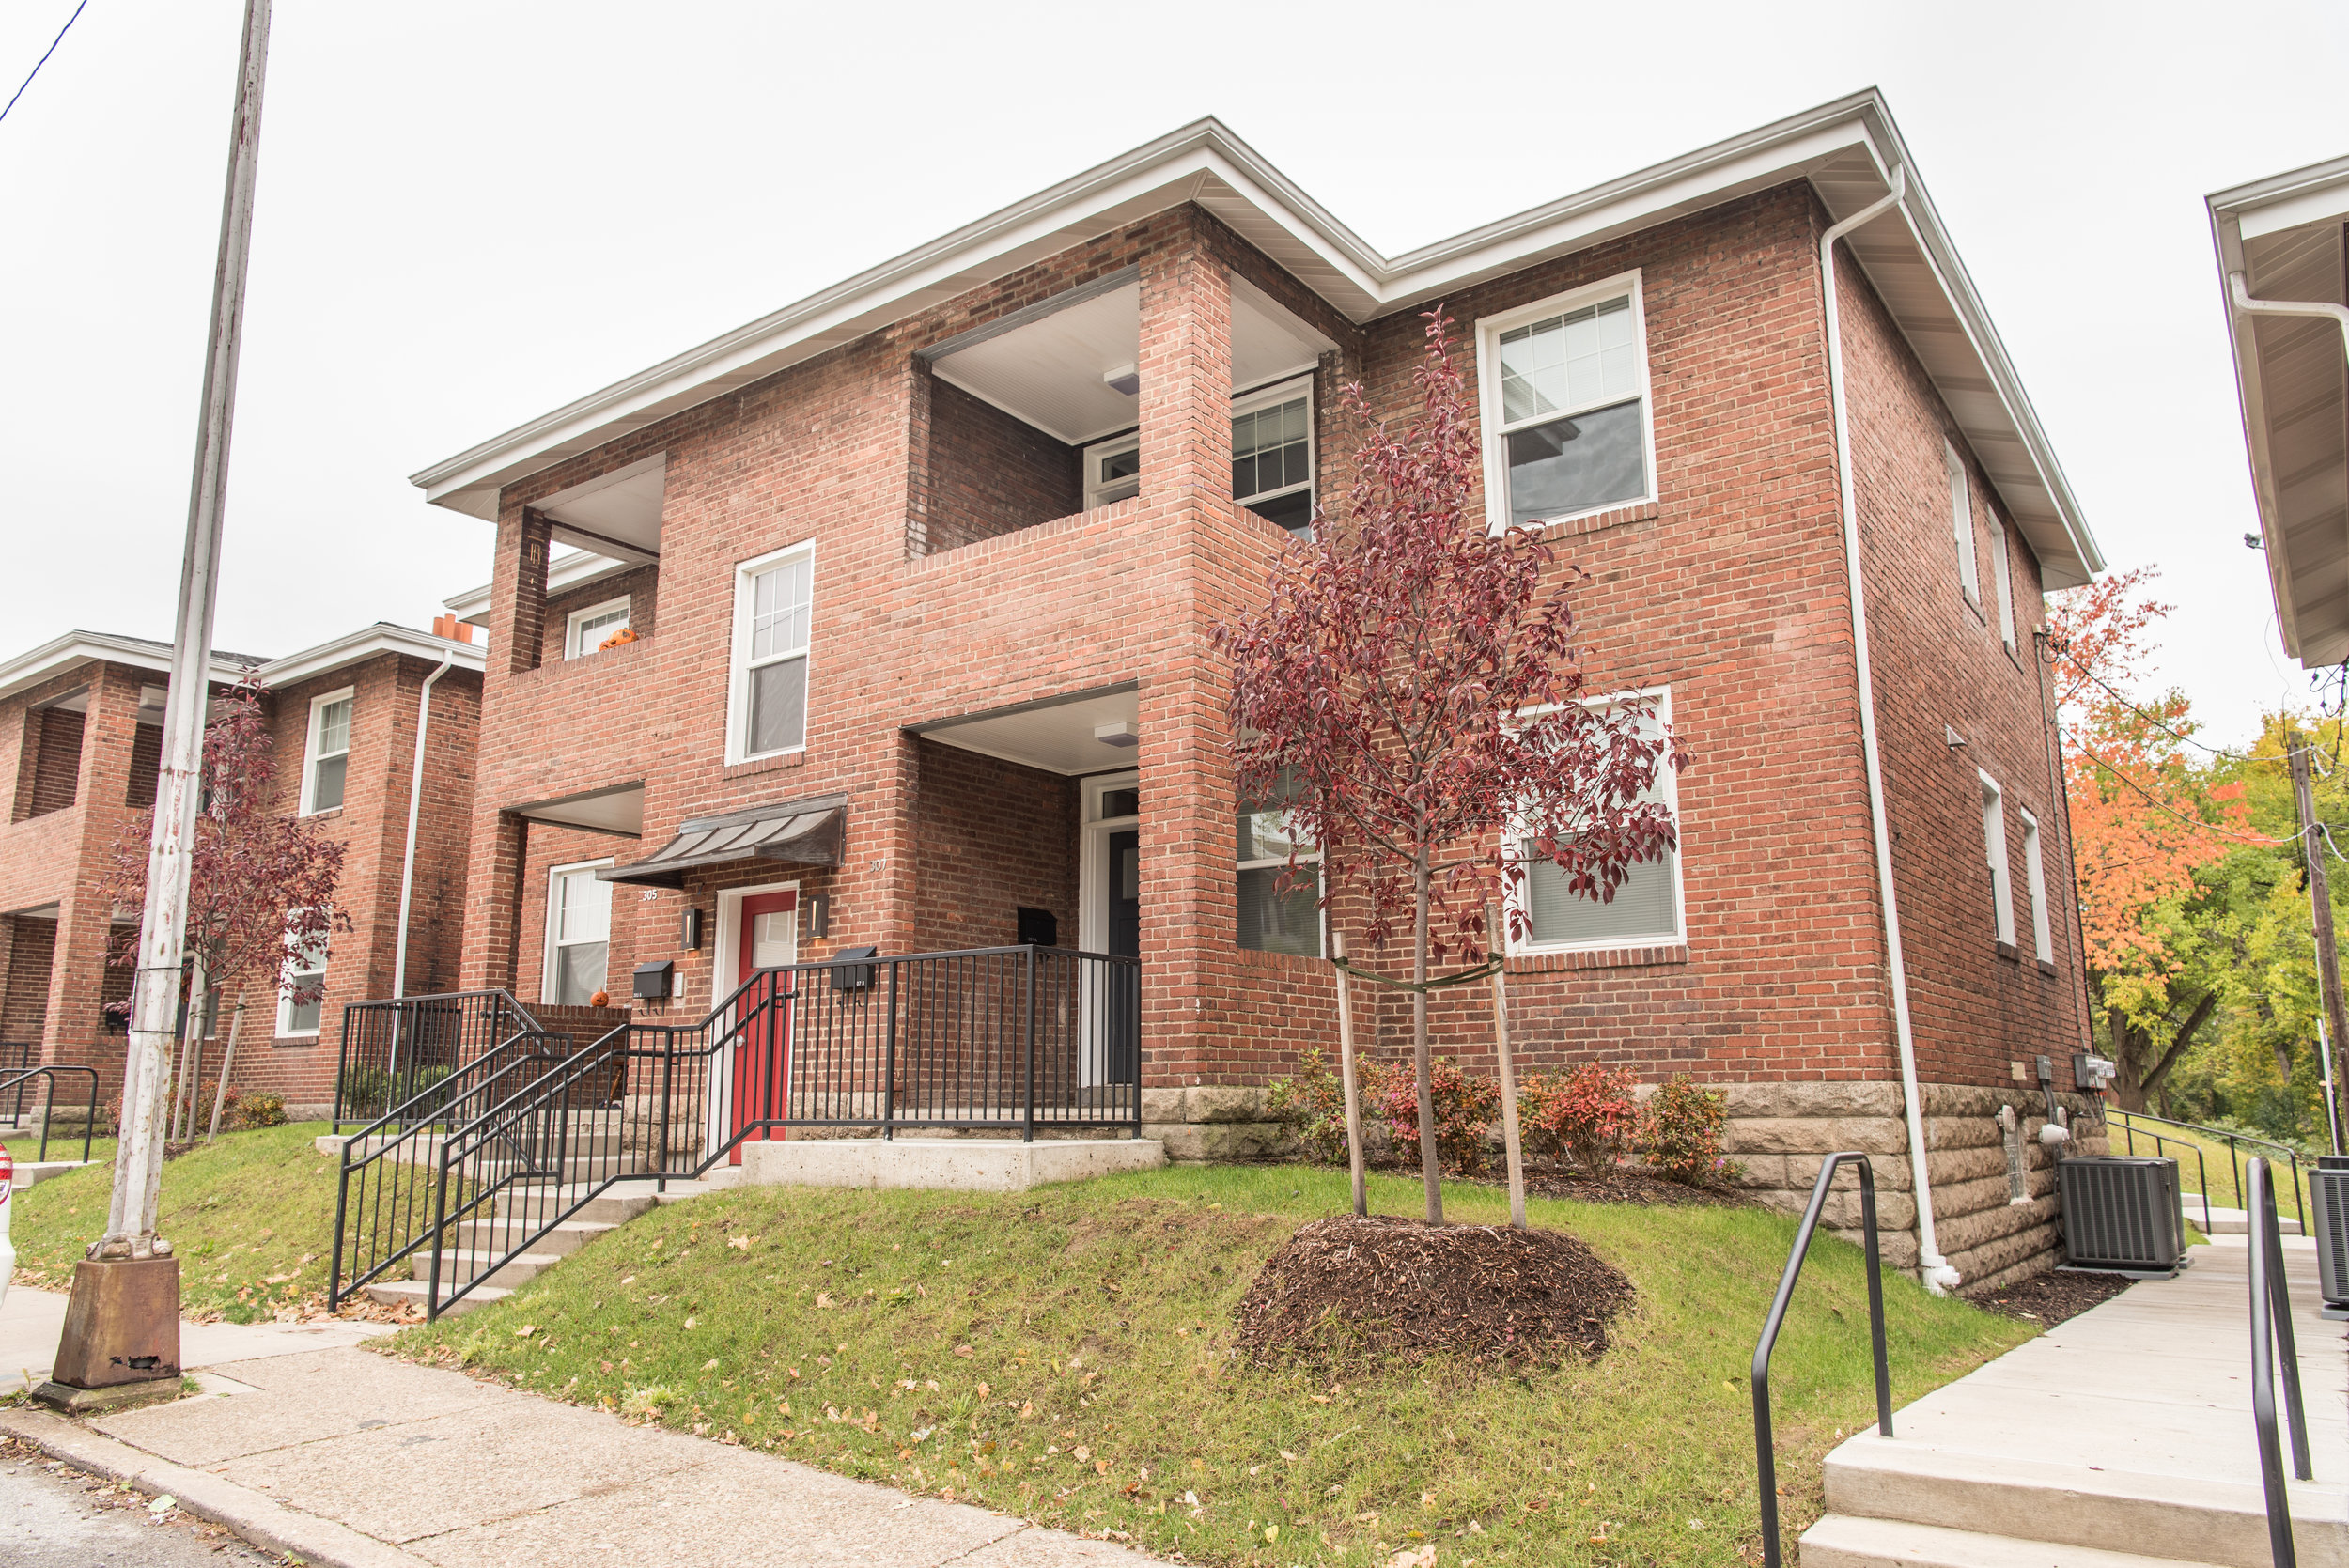 Allequippa Place - 2 and 3 bedroom apartments